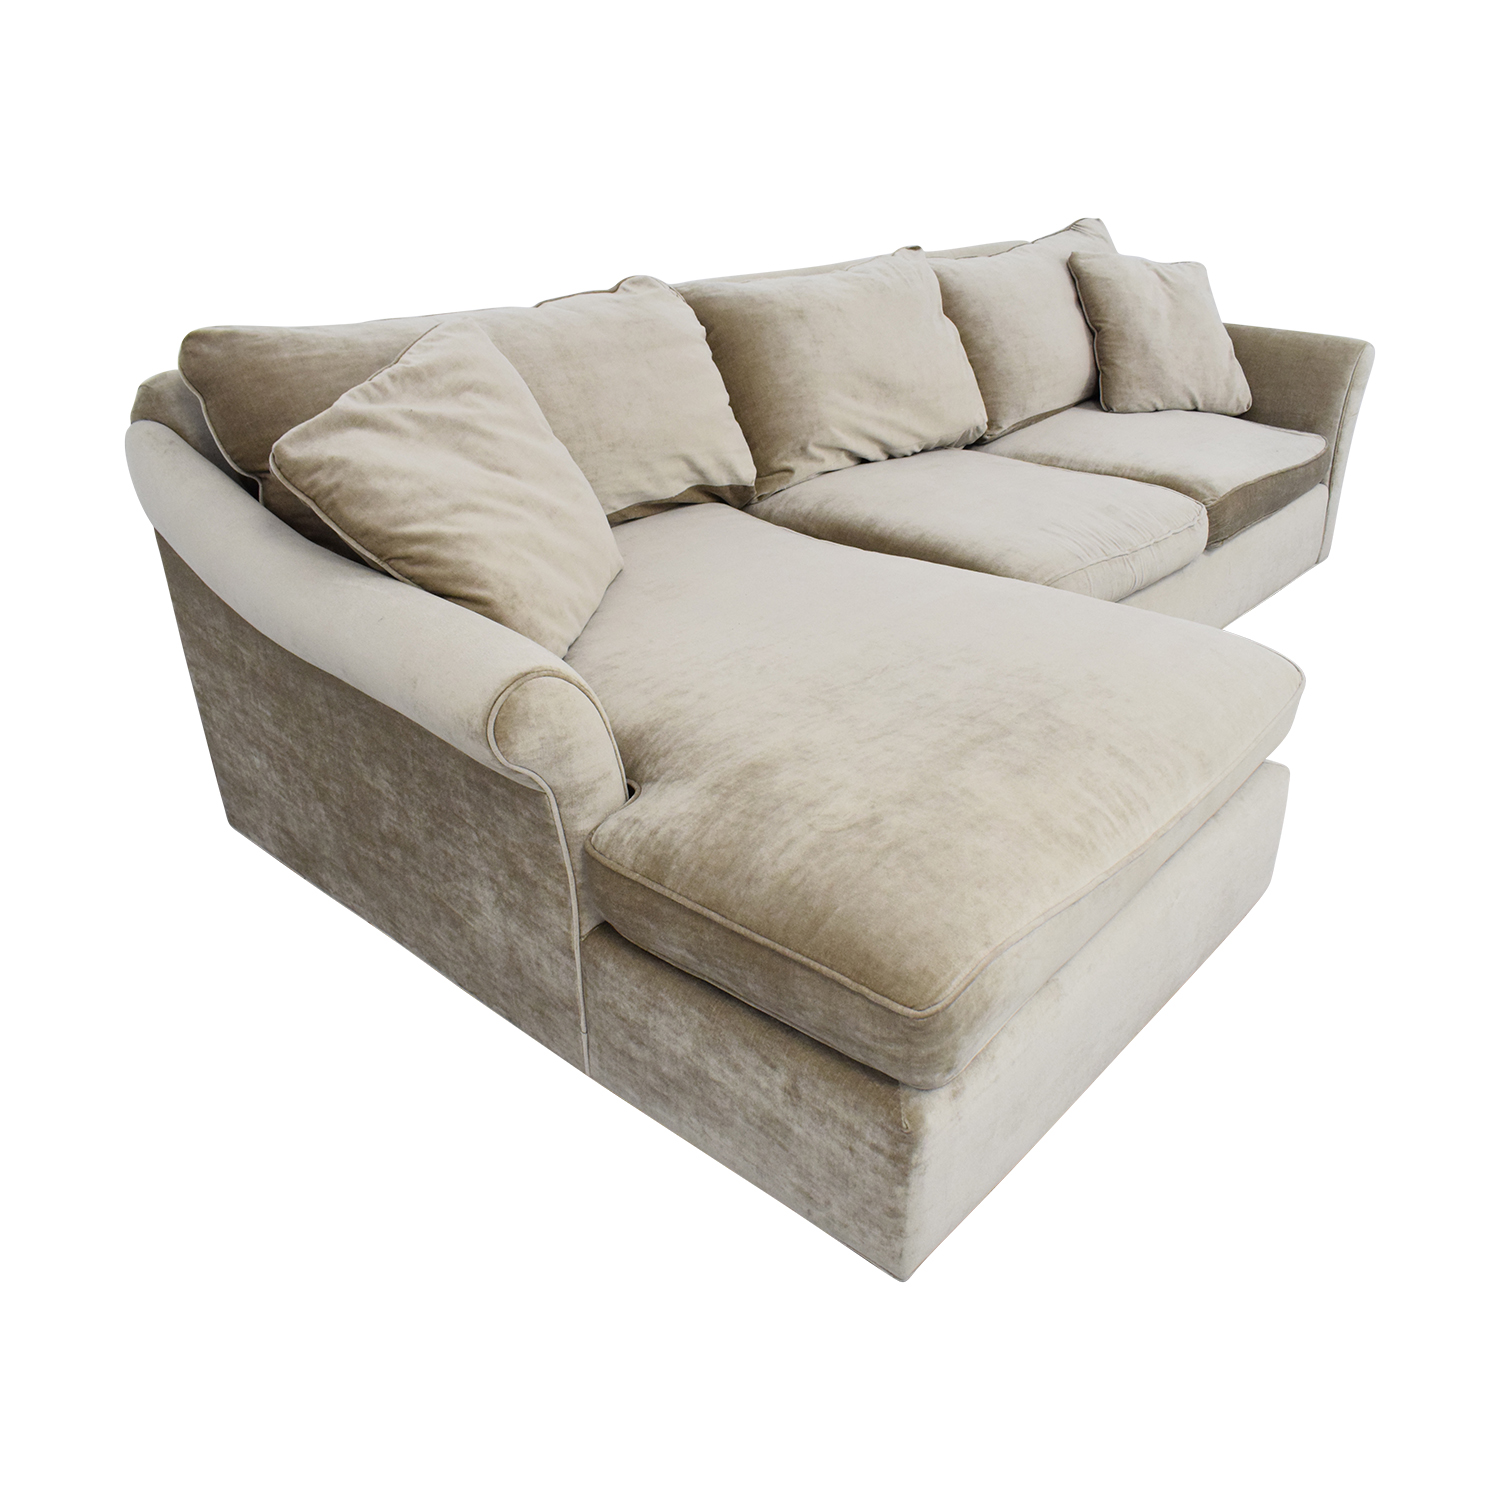 ABC Carpet & Home Winged Arm Sectional Sofa sale